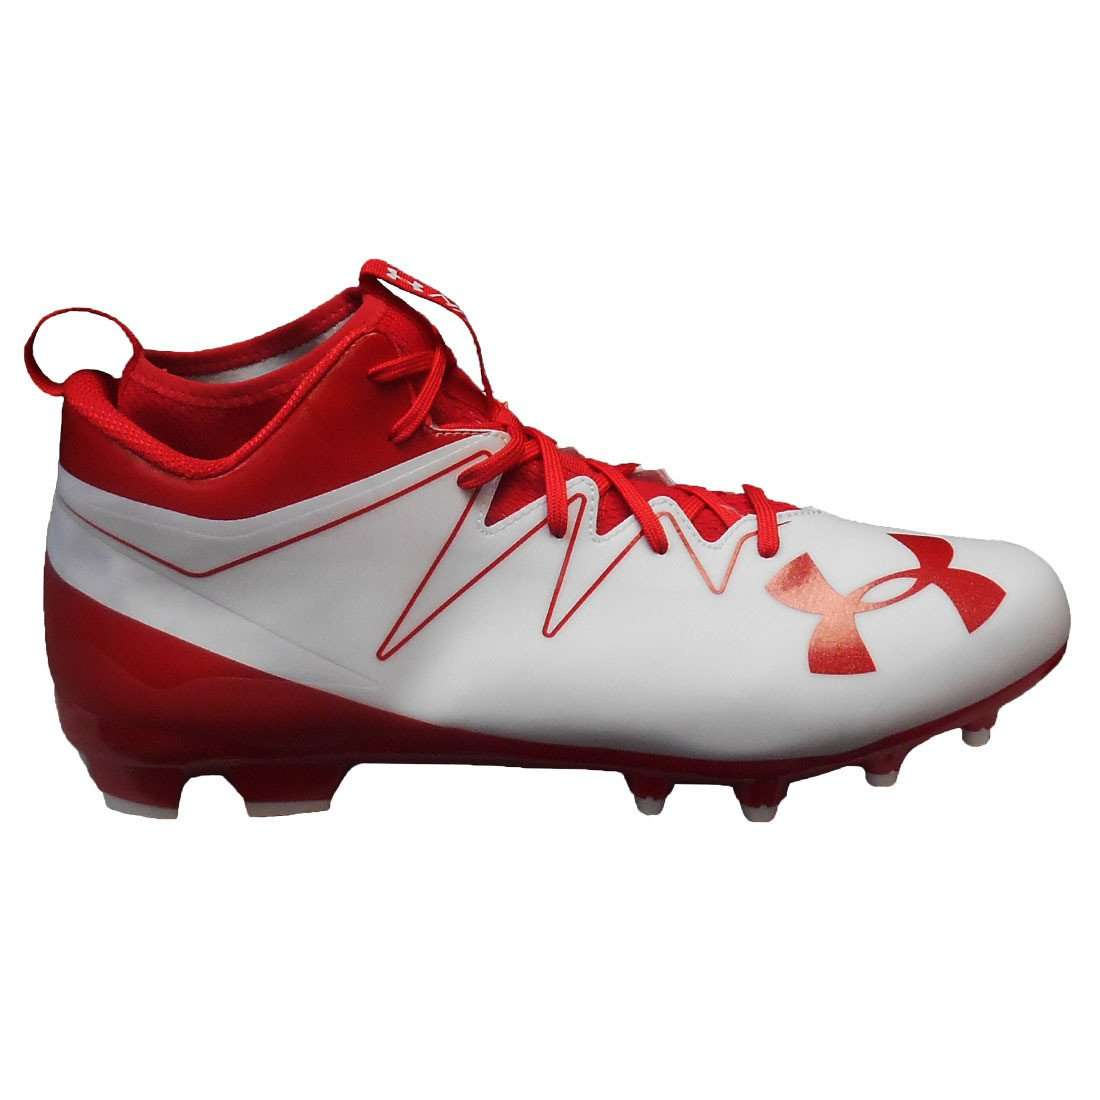 under armour football cleats red